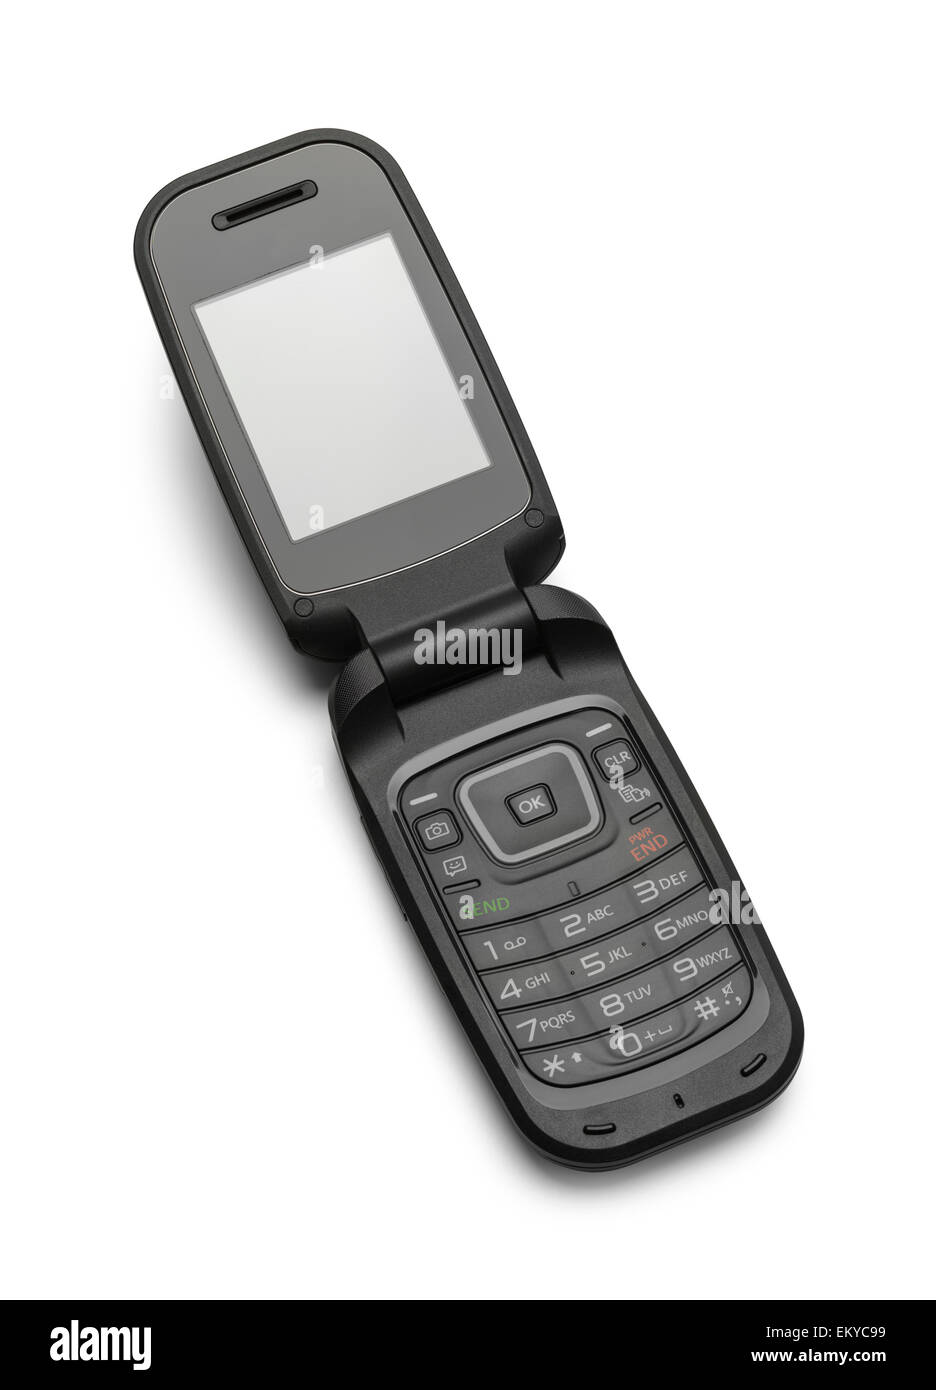 Open Black Flip Cell Phone Isolated on a White Background. - Stock Image